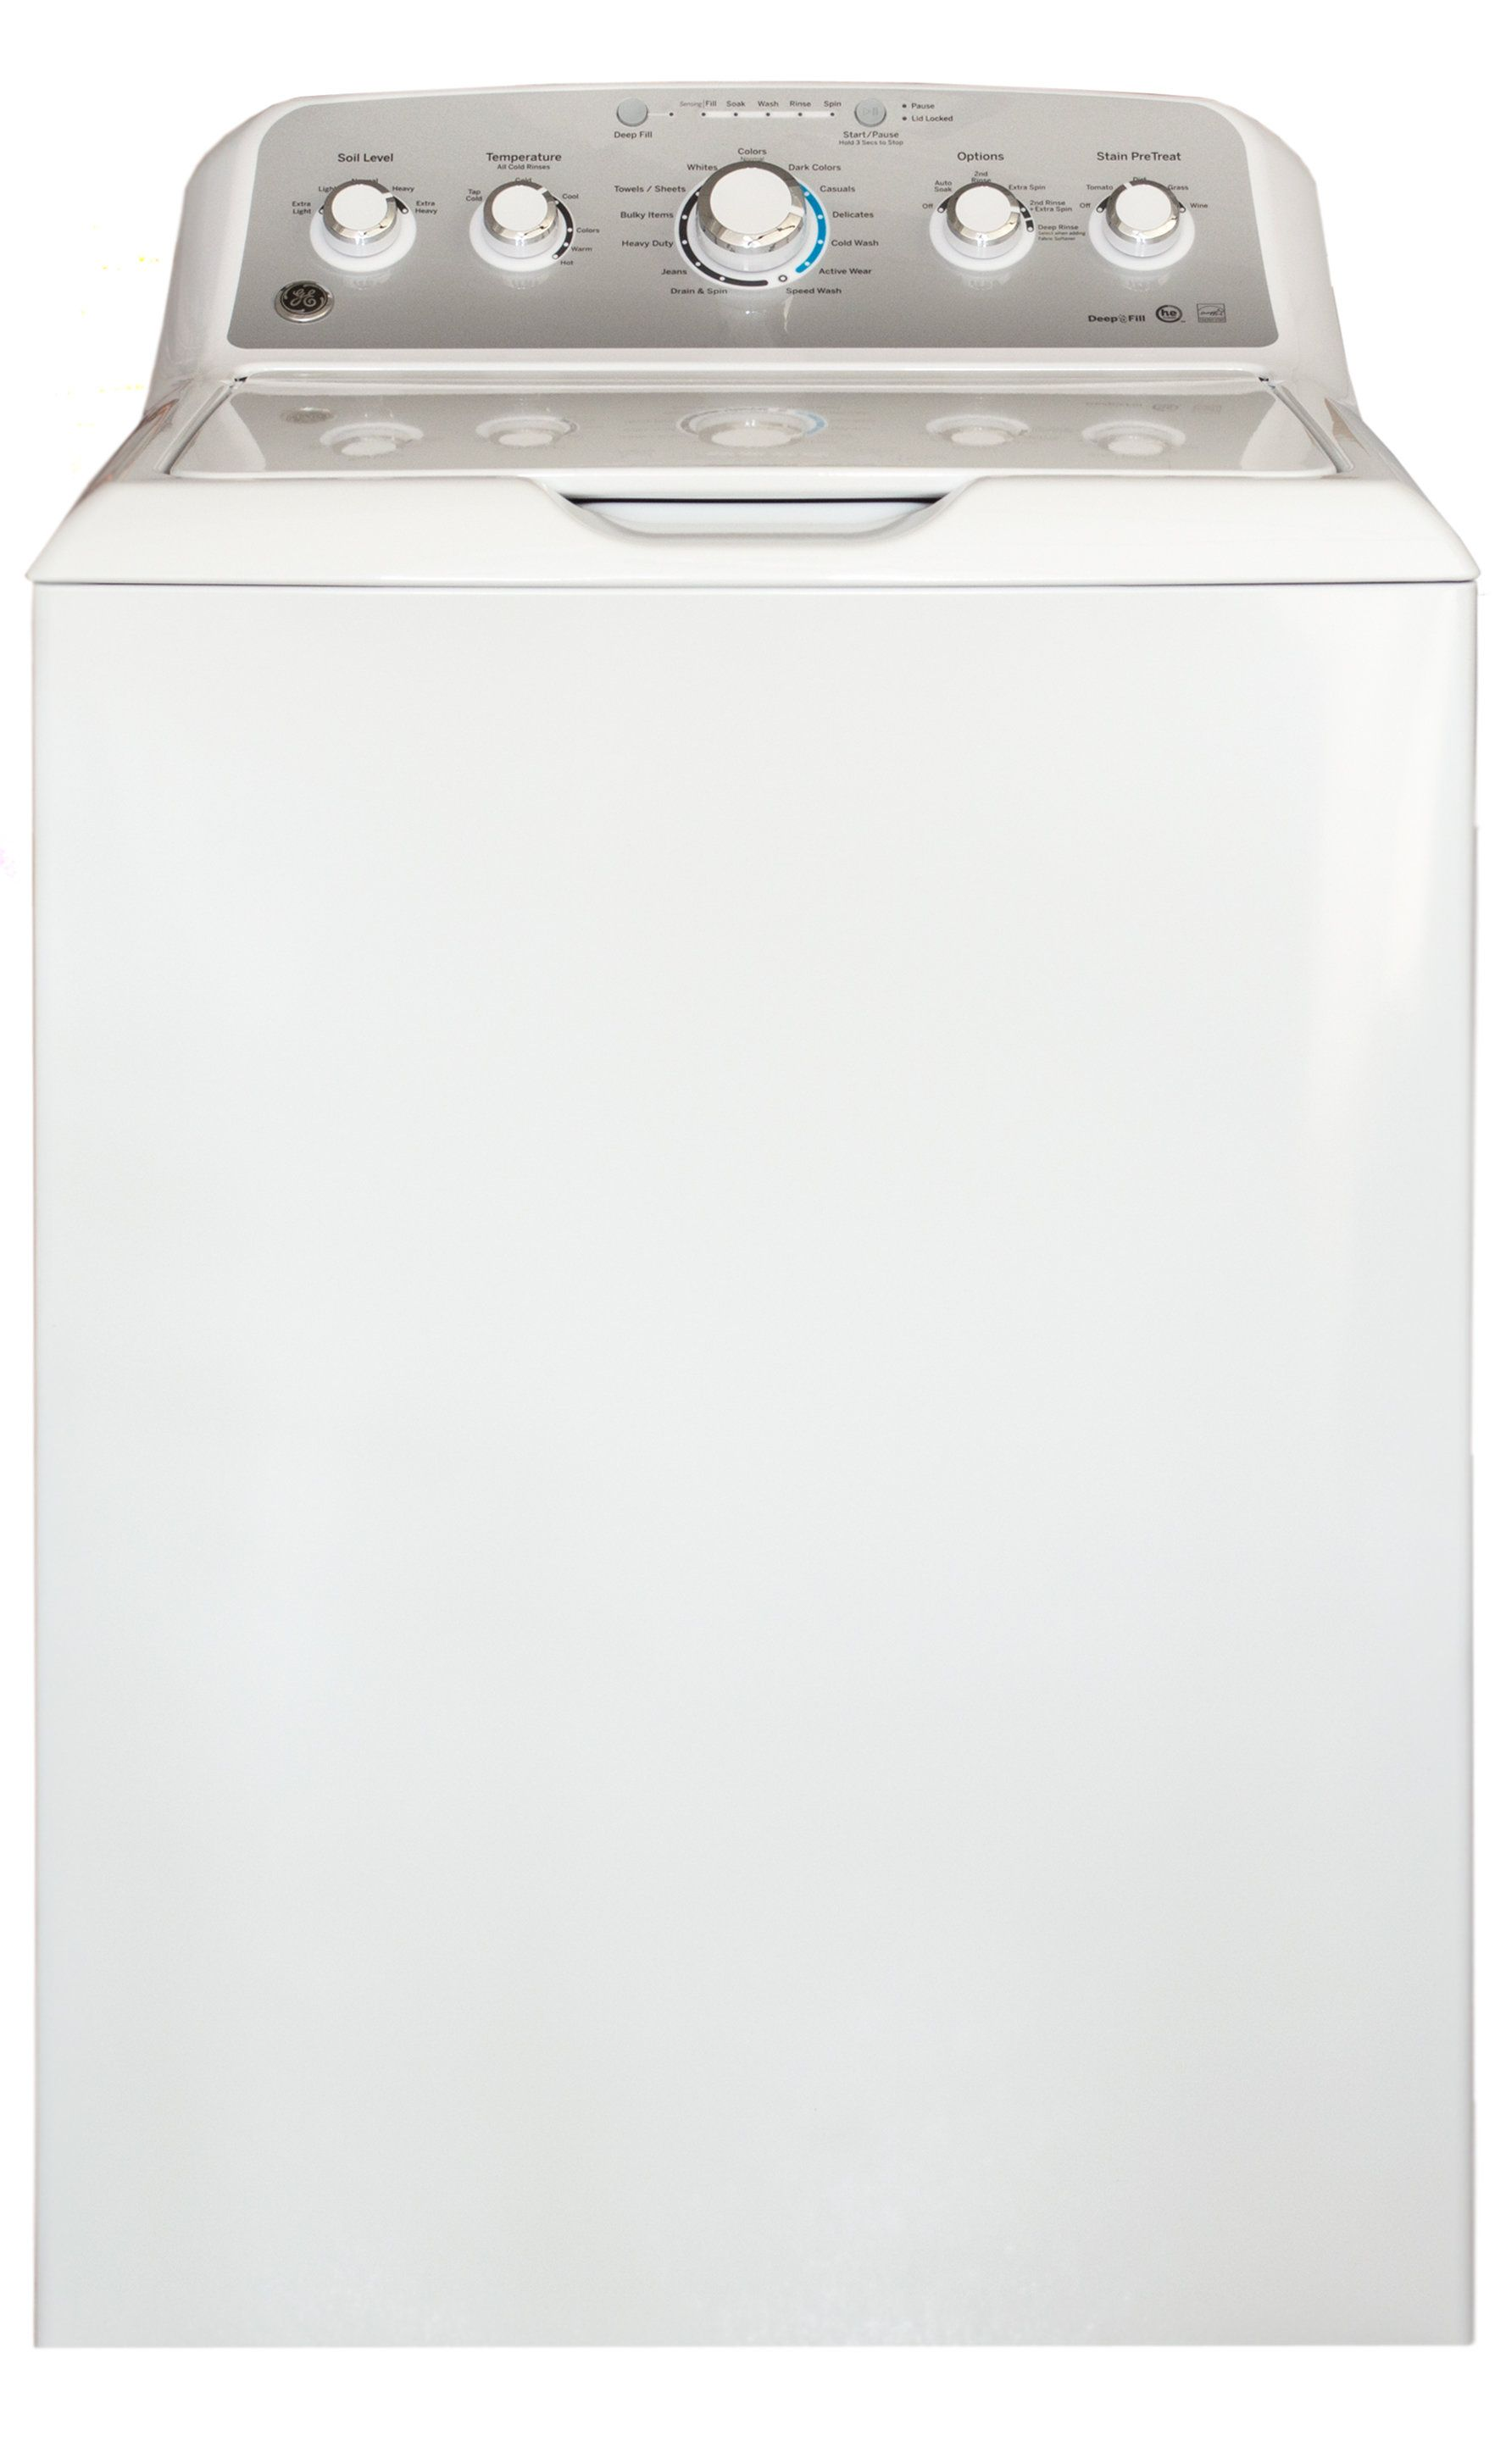 Washing Machine Reviews Machines Washers